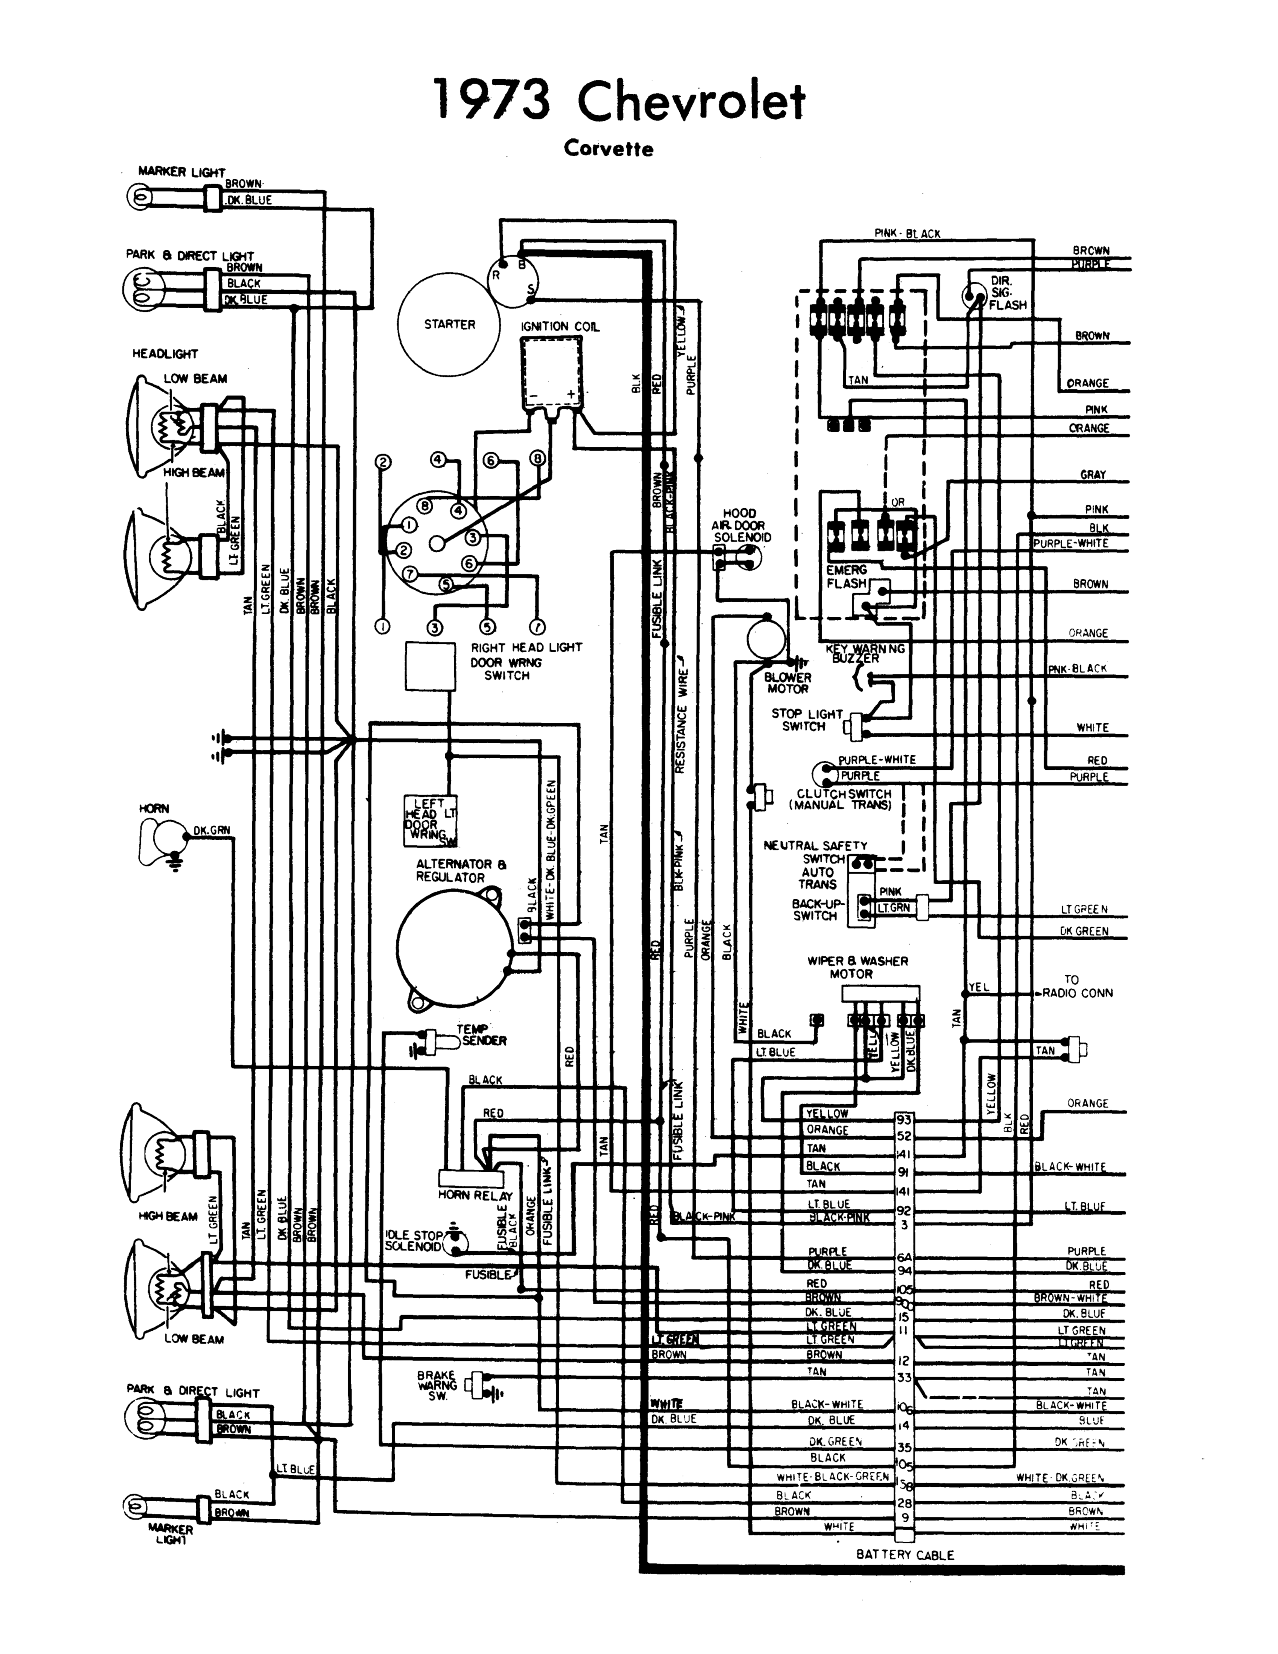 1973 Corvette Wiring Schematic Automotive Wiring Diagram \u2022 1980 Corvette  Wiring Diagram 1992 Corvette Cooling Diagram